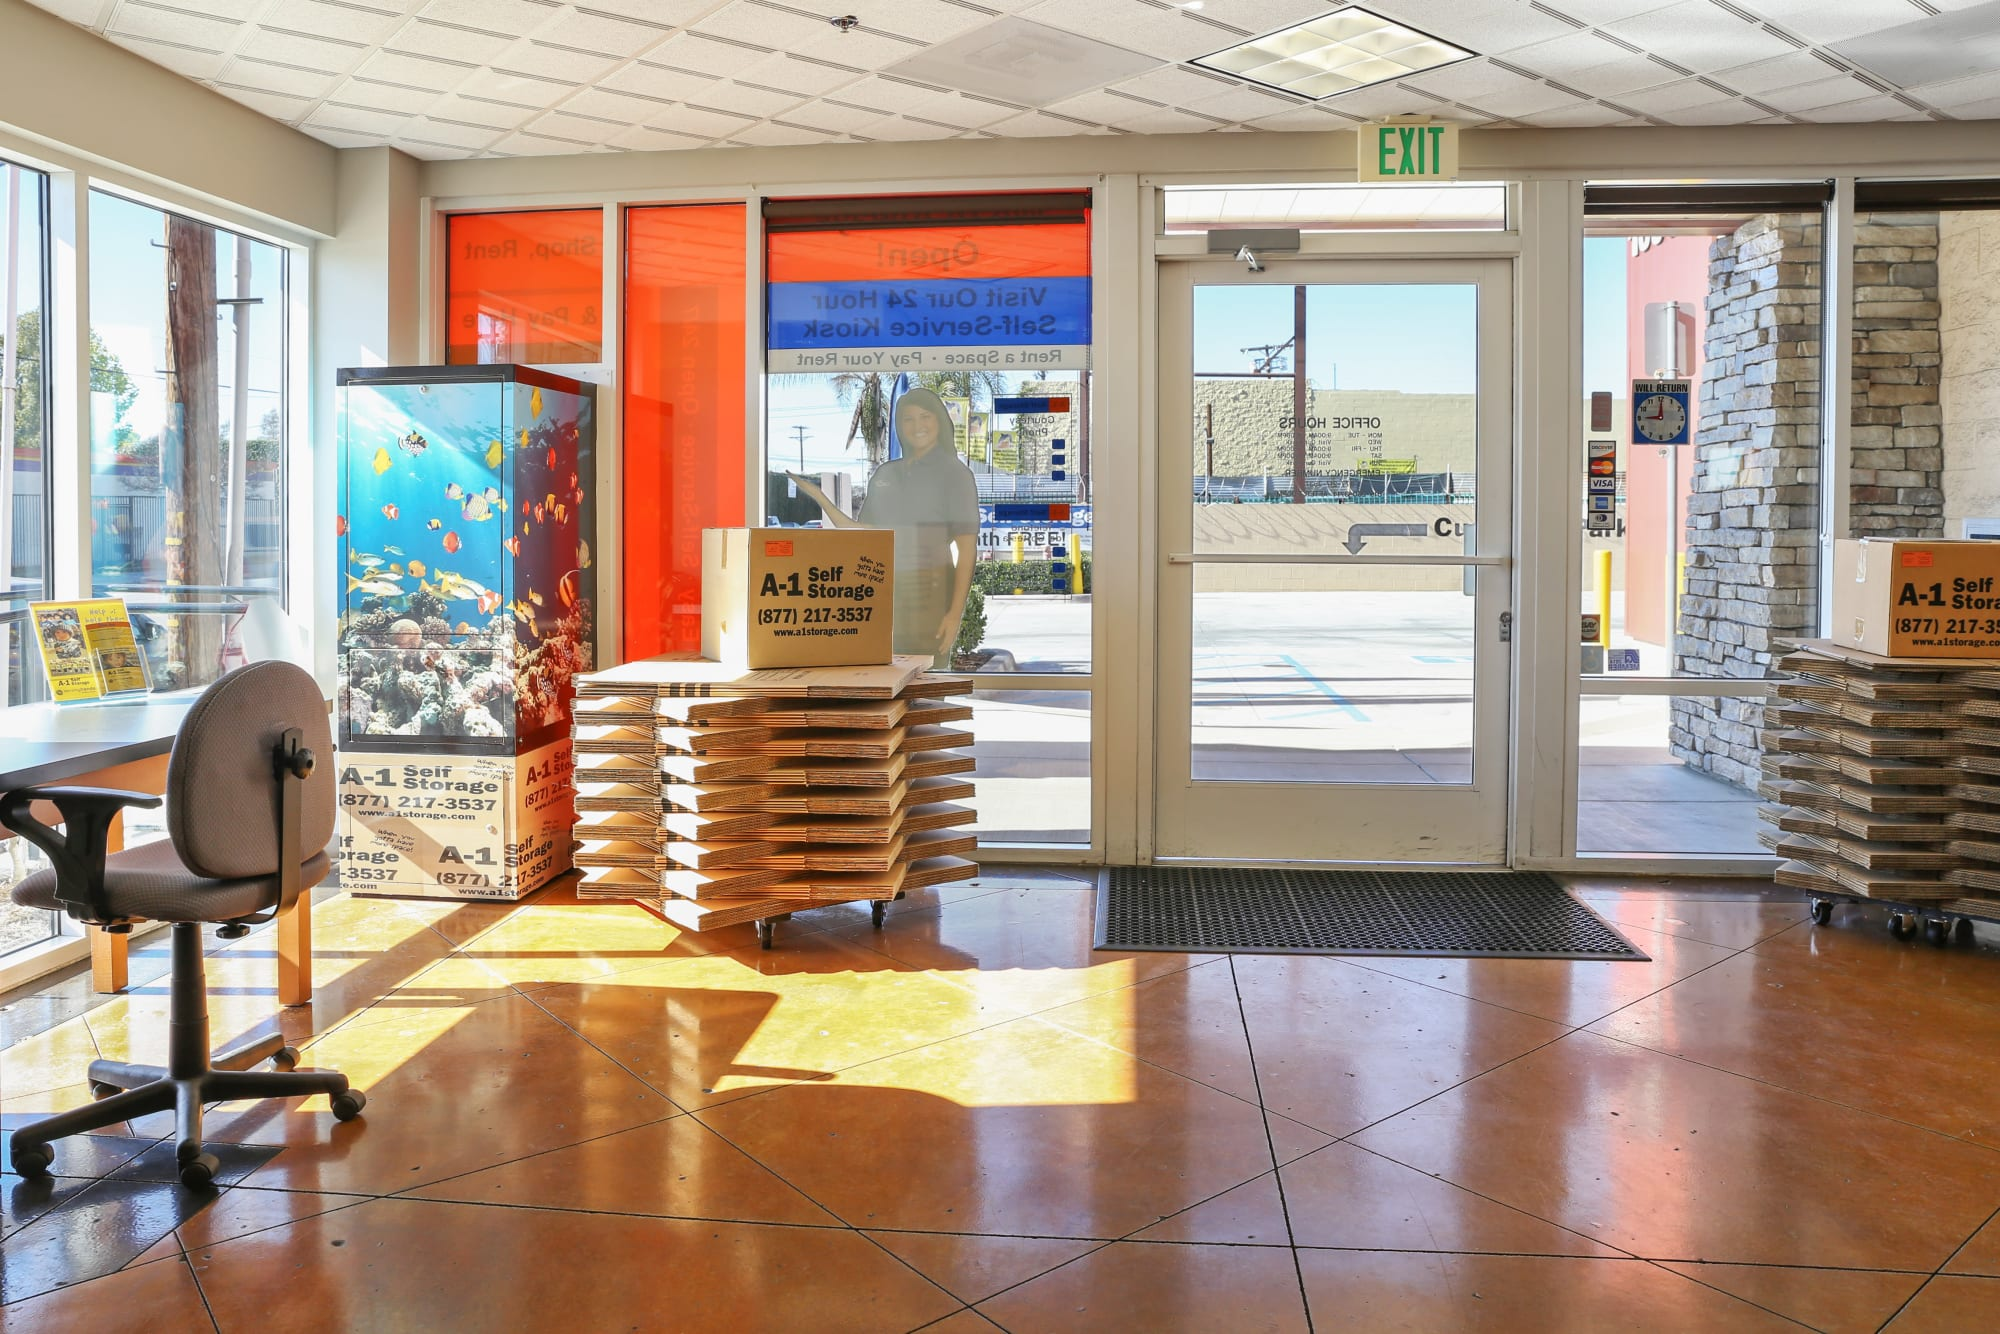 The leasing office at A-1 Self Storage in North Hollywood, California